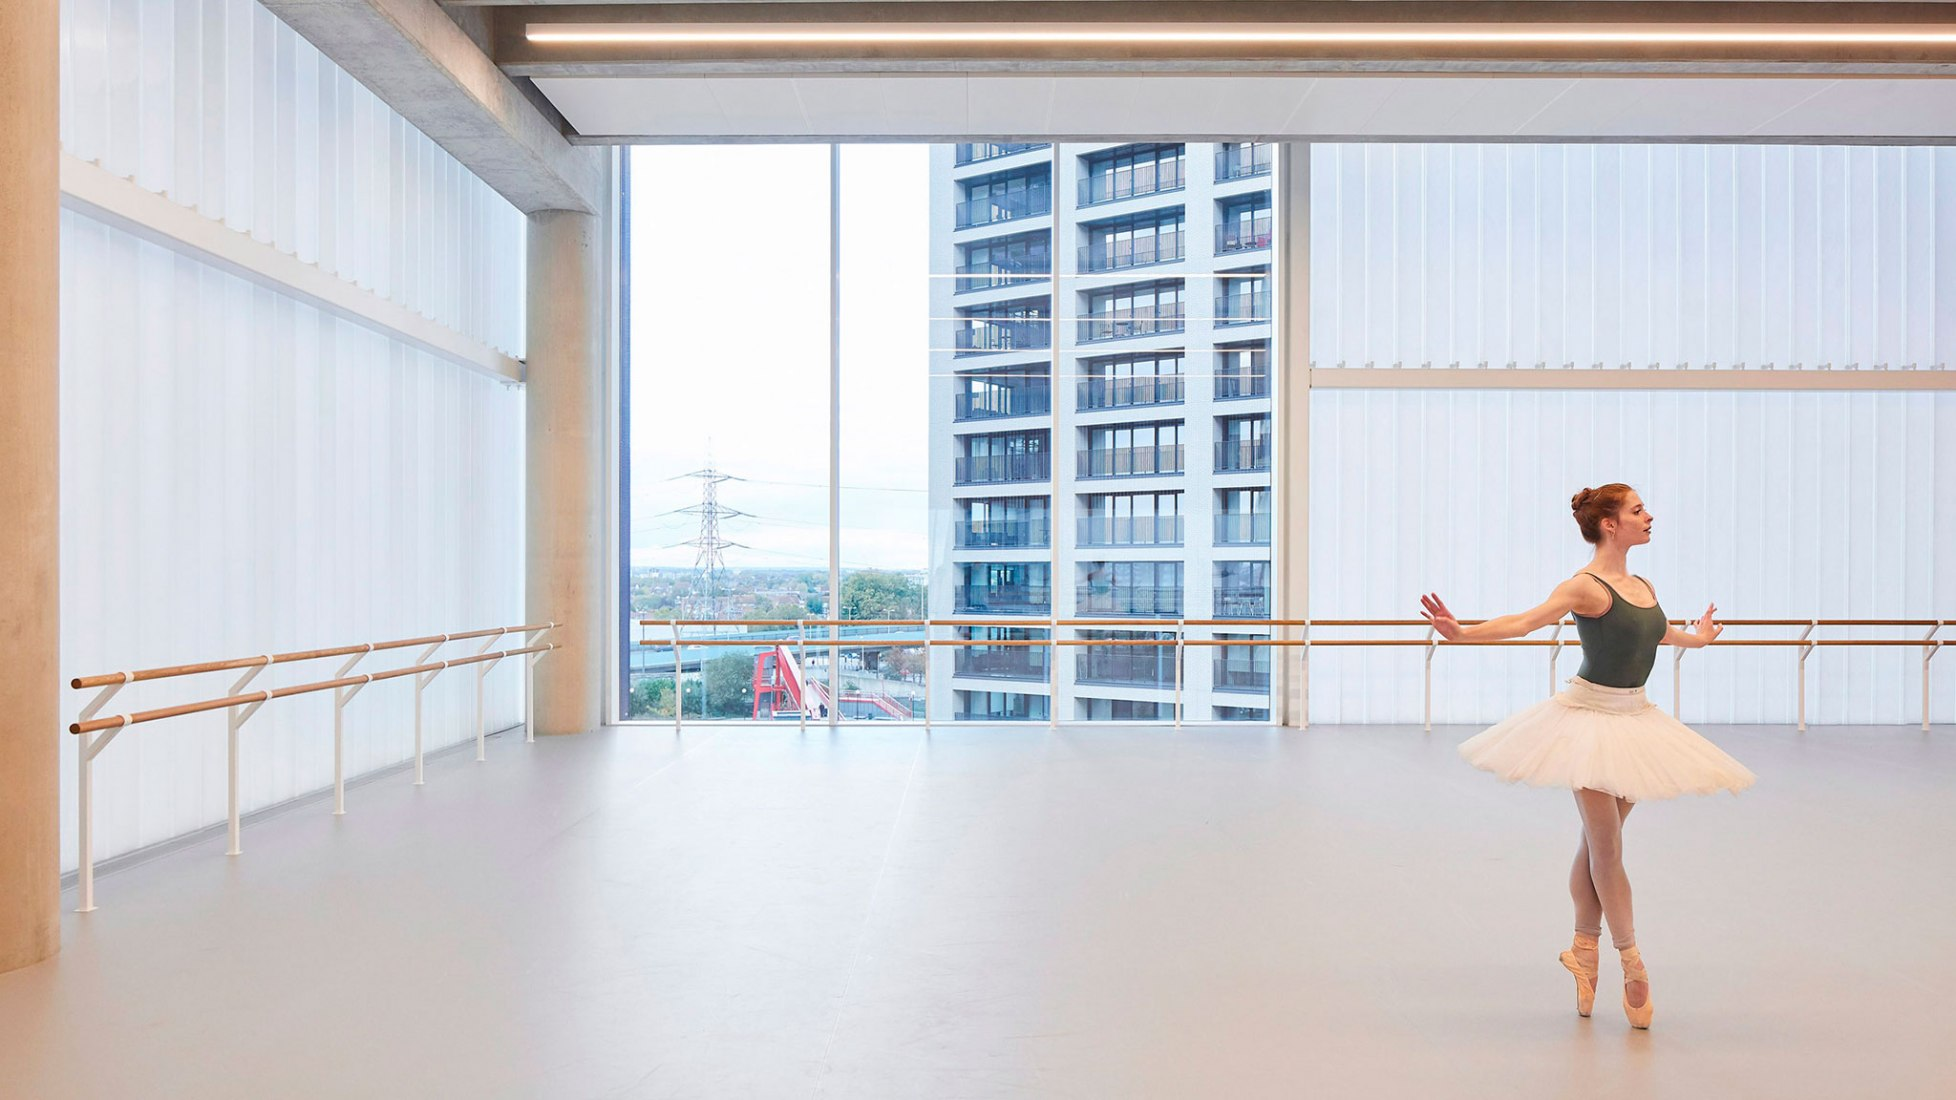 New Facility for the English National Ballet by Glenn Howells Architects. Photography by Hufton + Crow